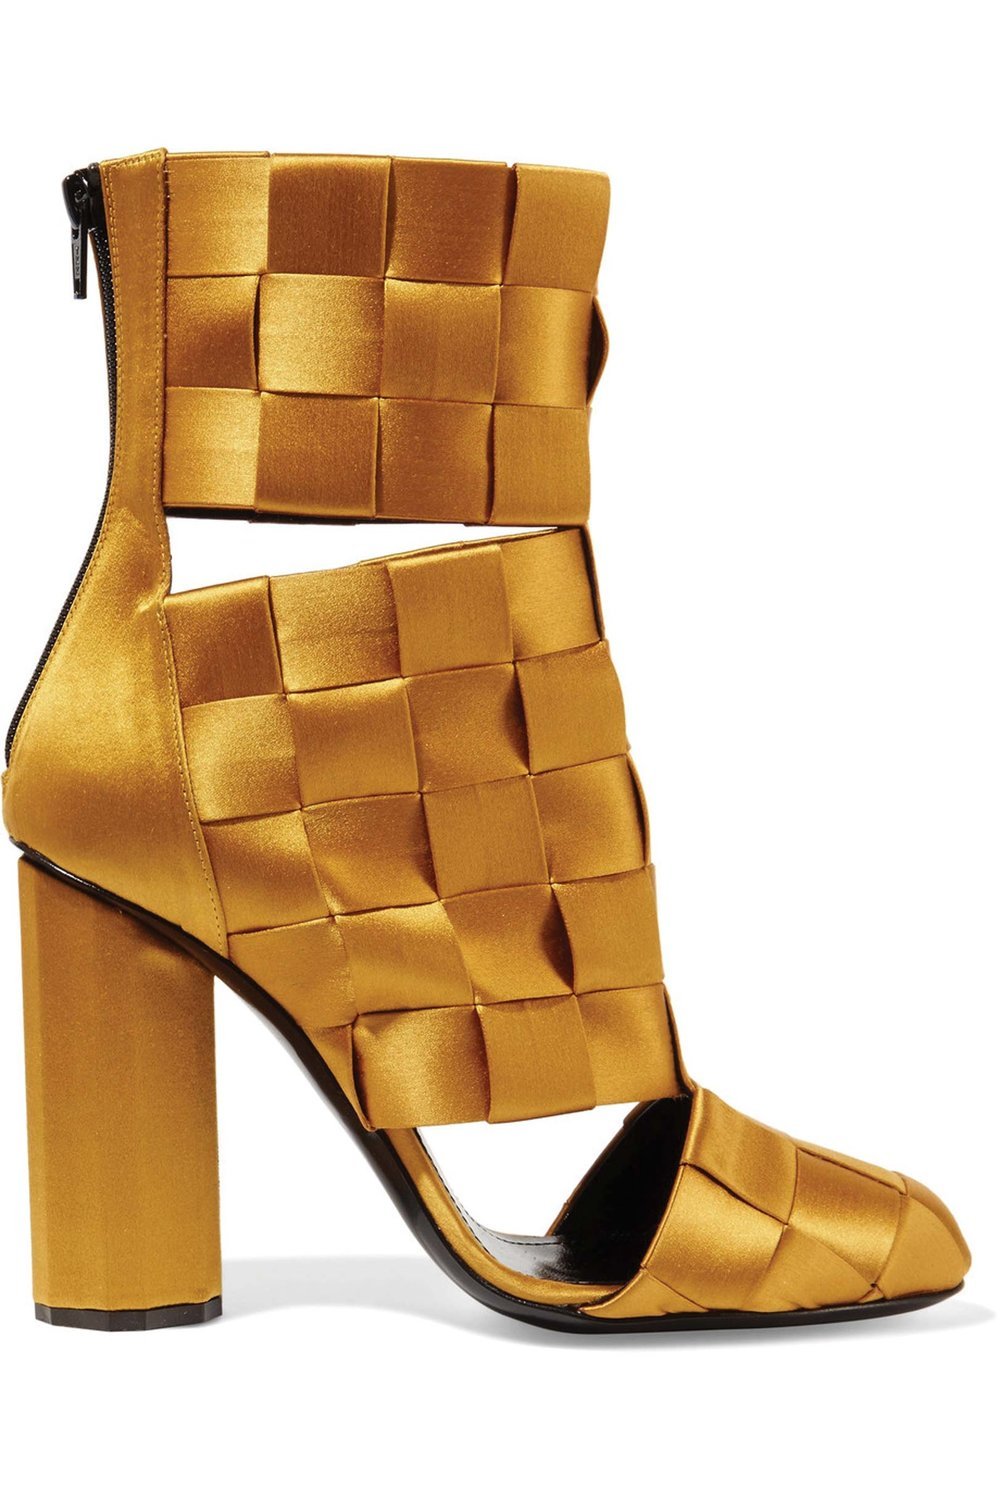 Basketweave Satin Ankle Boots by Marco de Vincenzo US$1,235